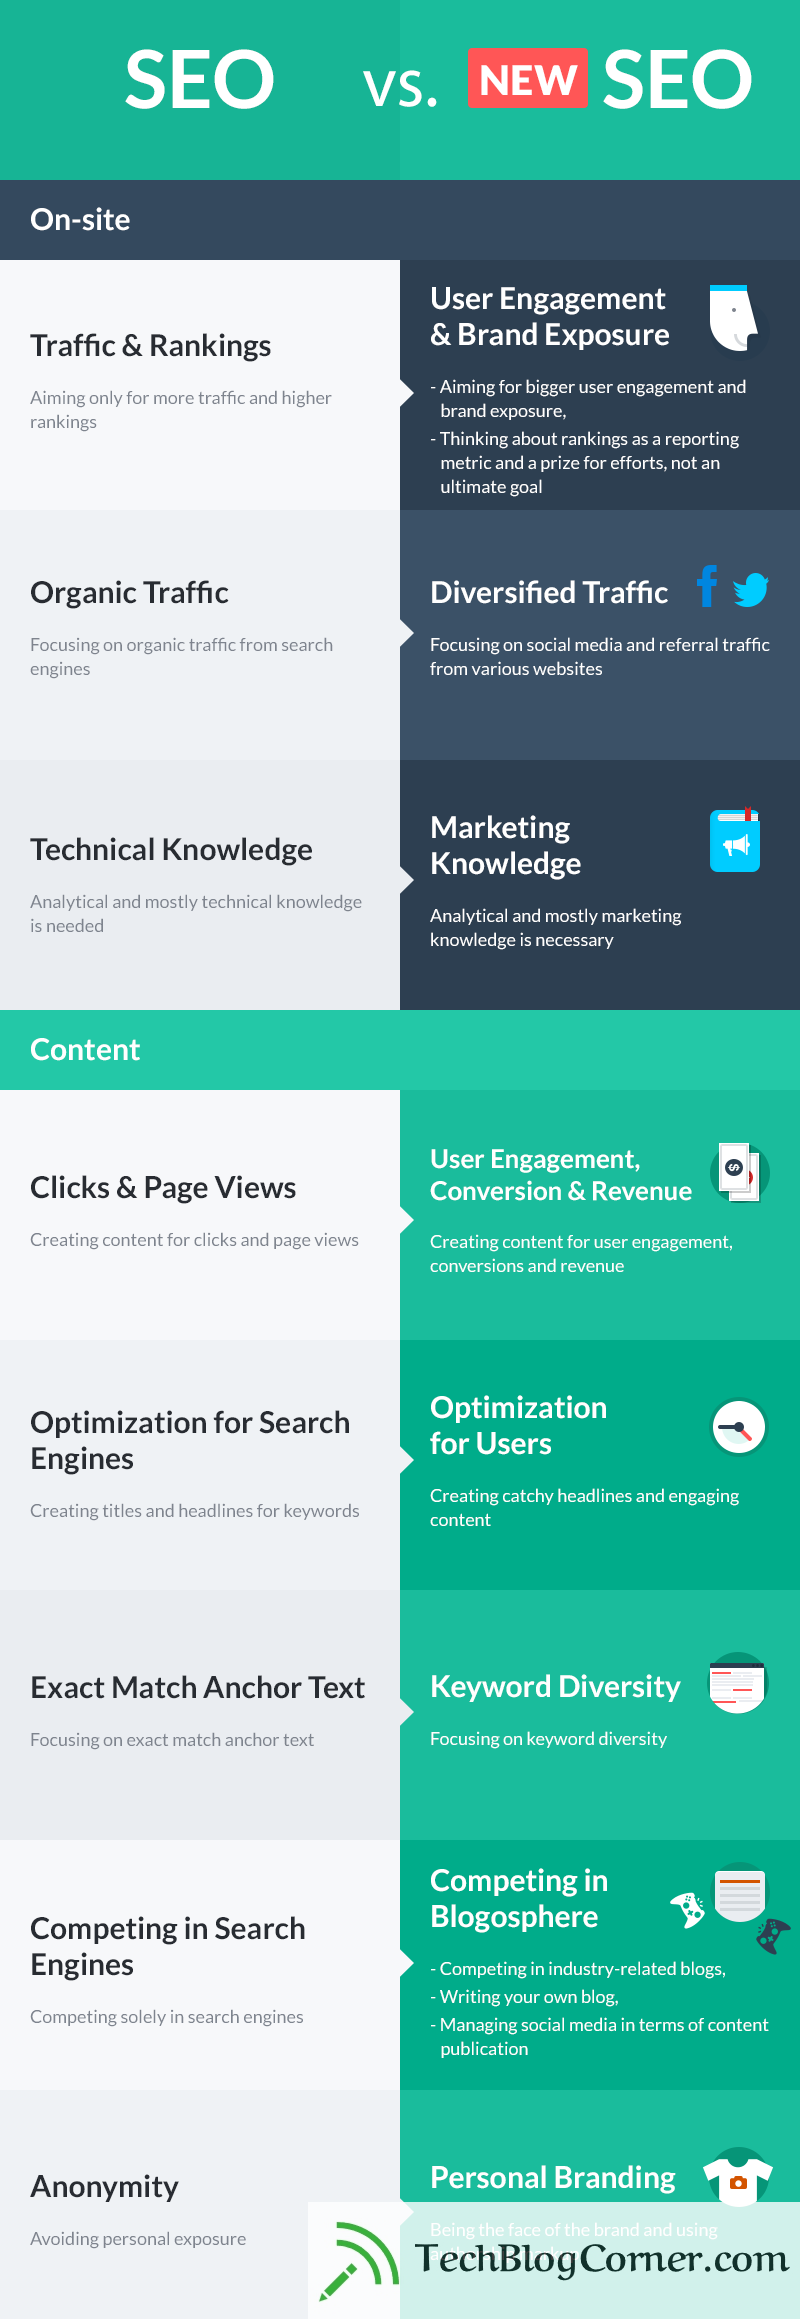 seo-methods-and-tools-that-work-infographic-techblogcorner